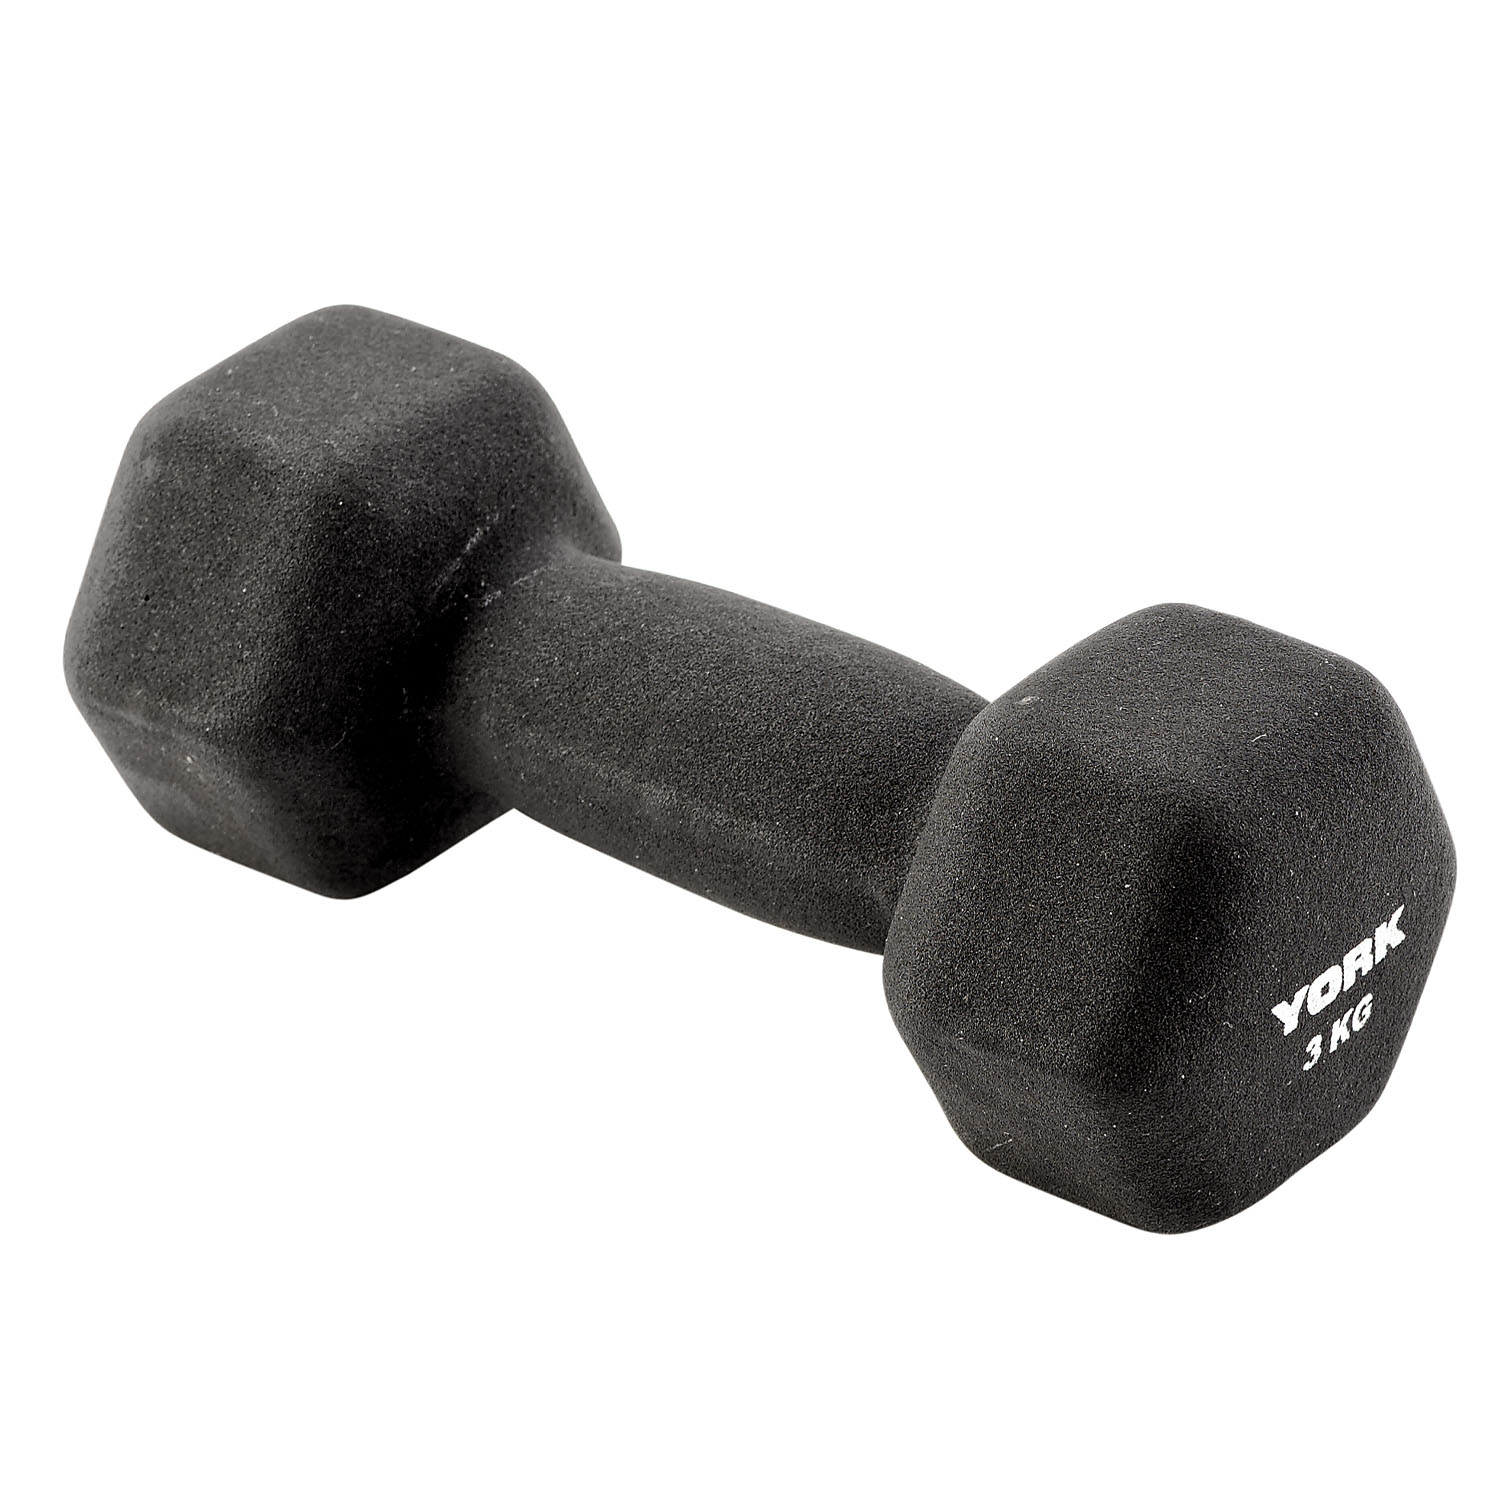 York 3kg Neo Hex Dumbbell